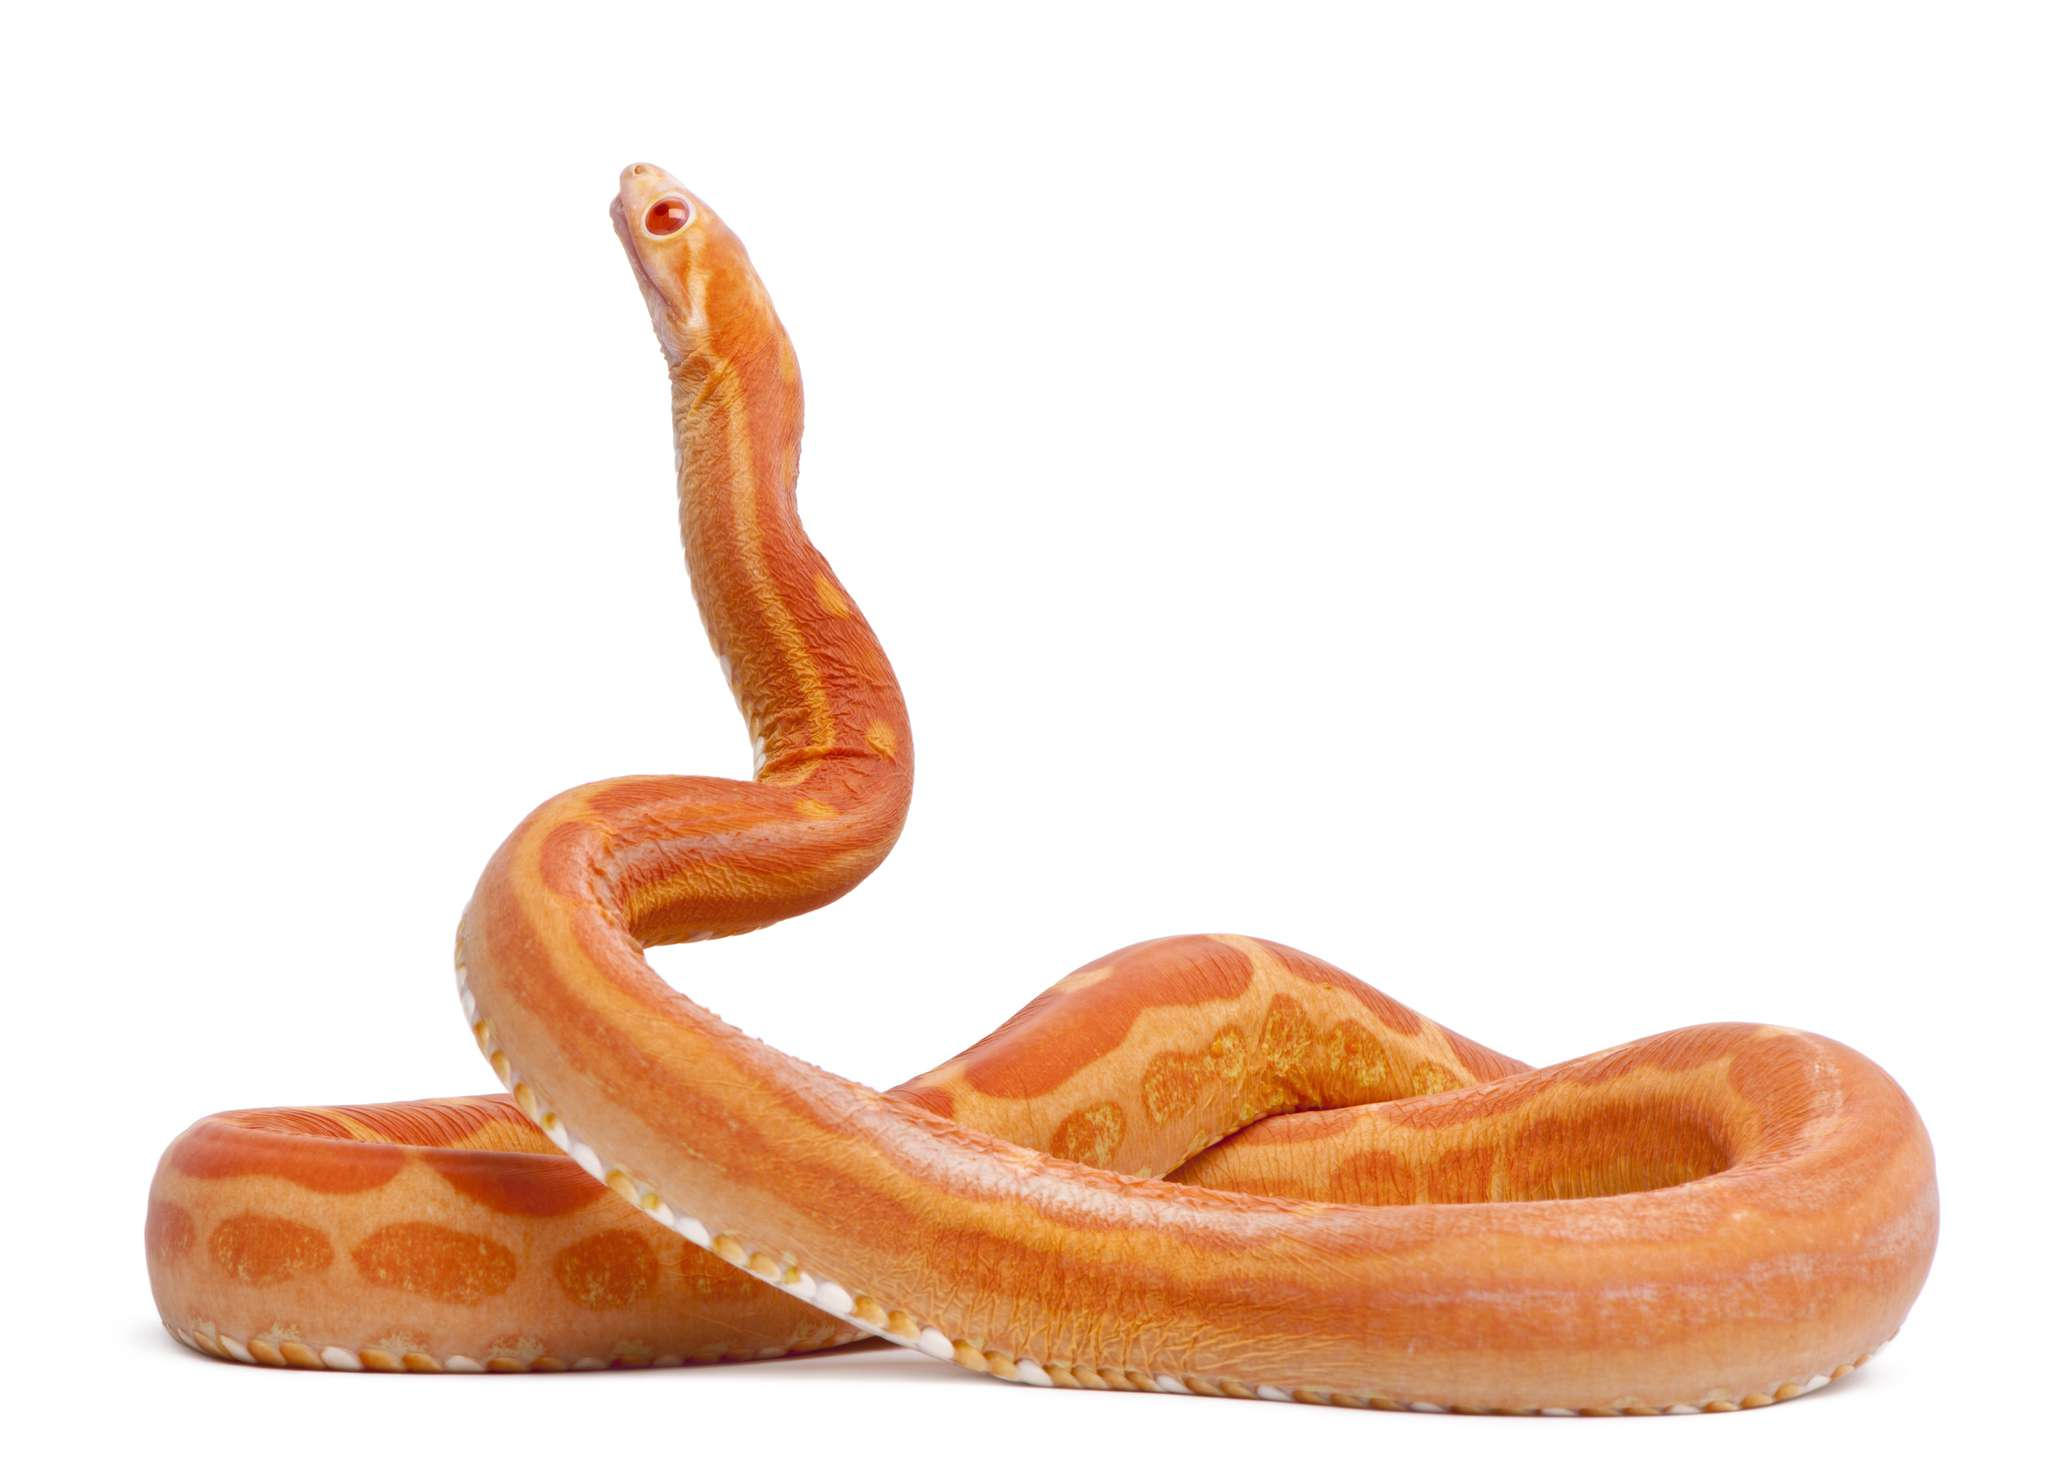 bright orange scaleless corn snake coiled with neck extended against white background